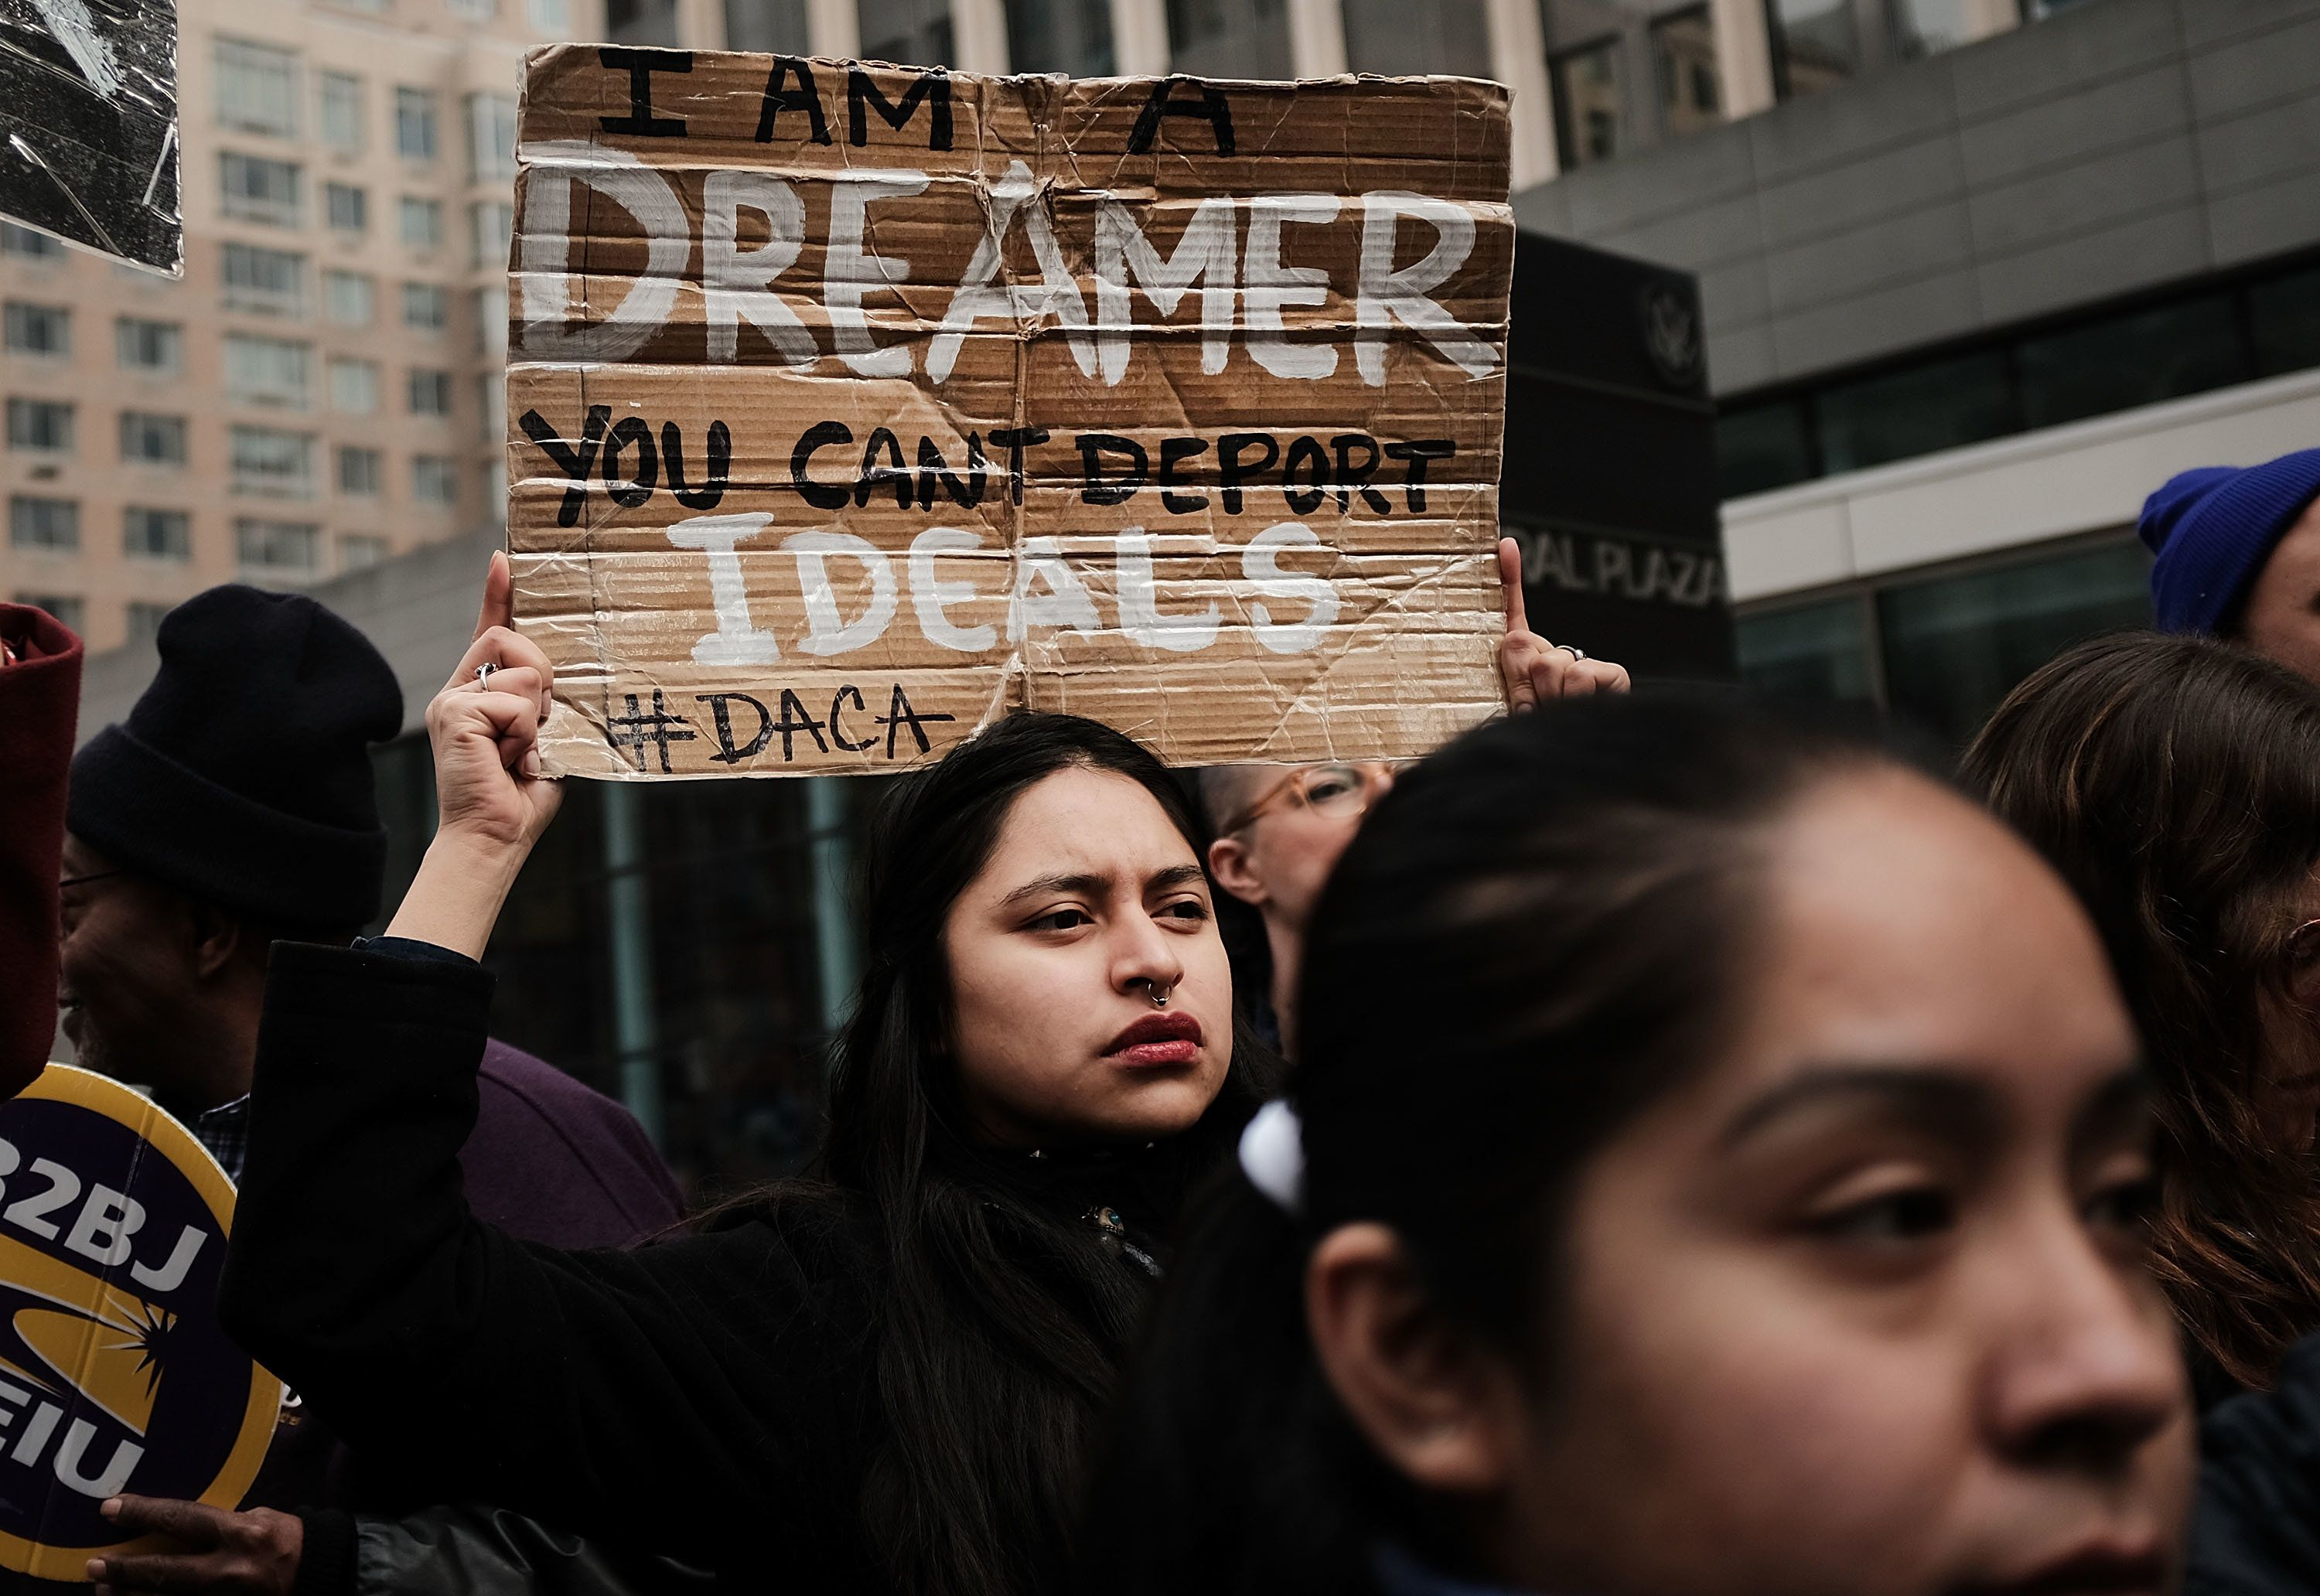 Judge rules Trump administration still not justified ending DACA